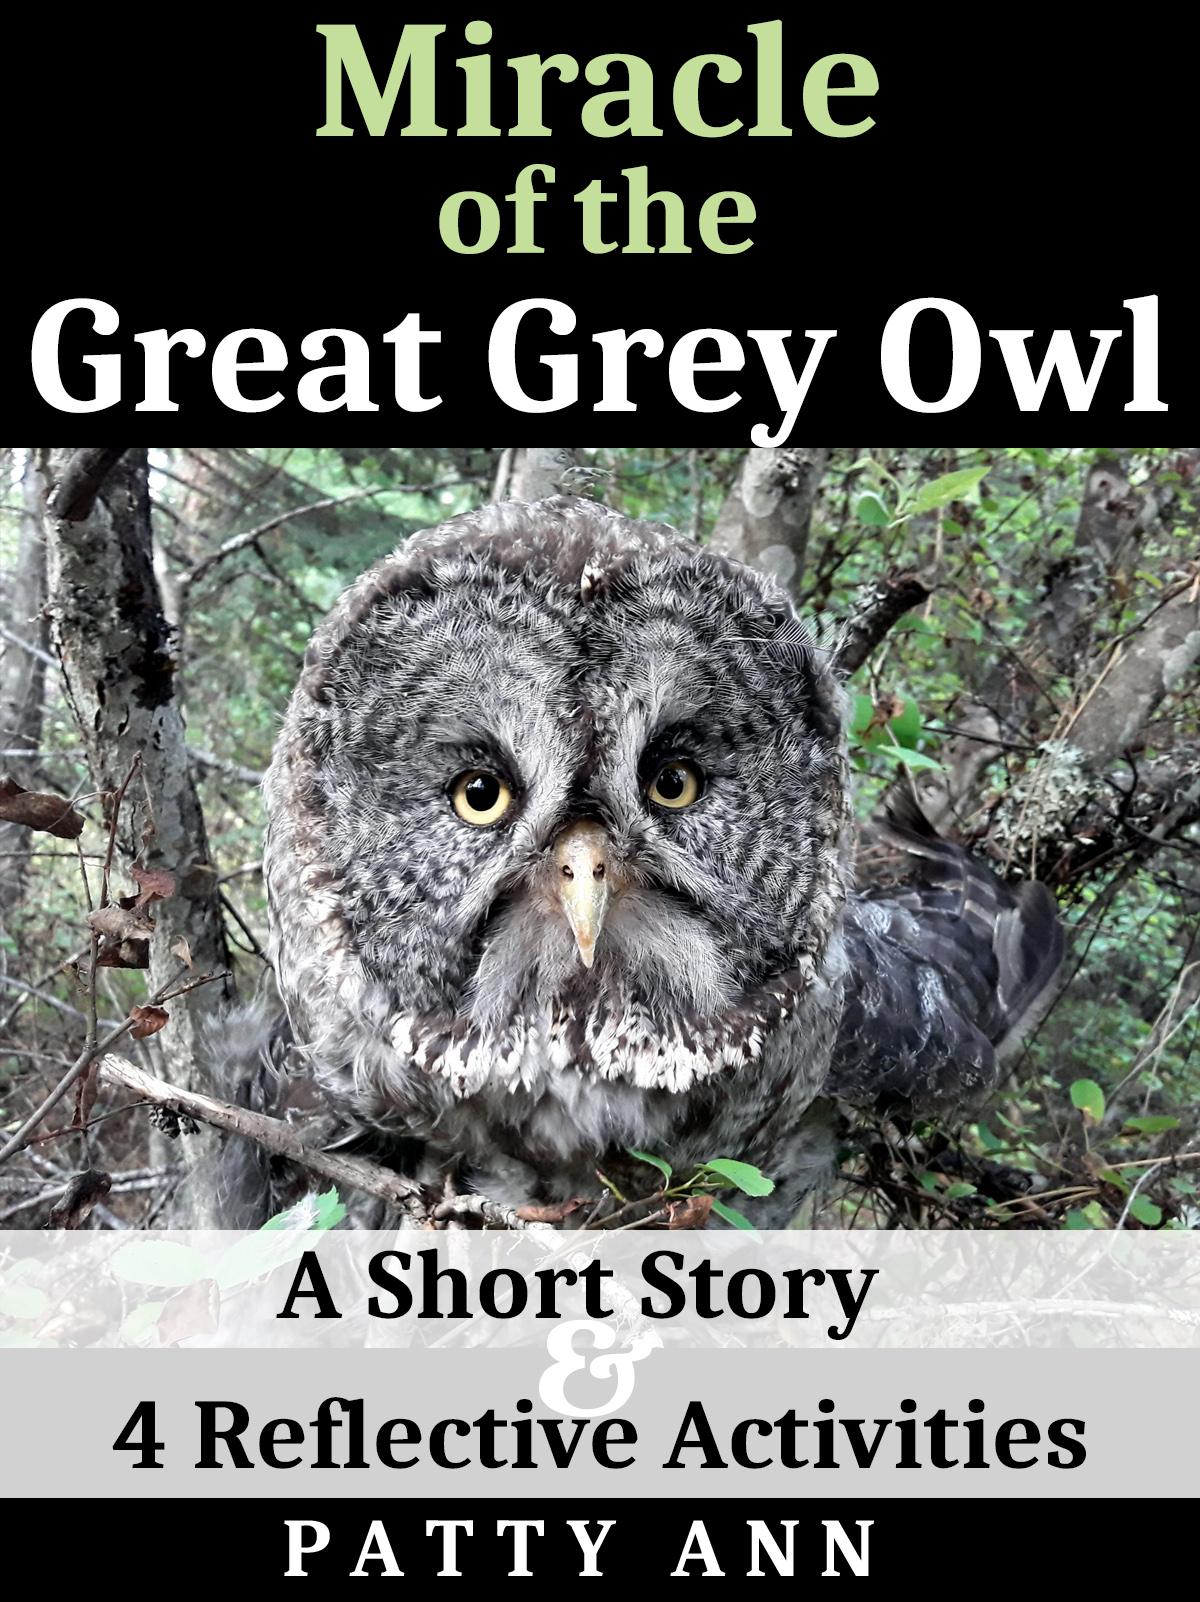 Great Grey Owl Miracle Story & 4 Activities – Patty Ann